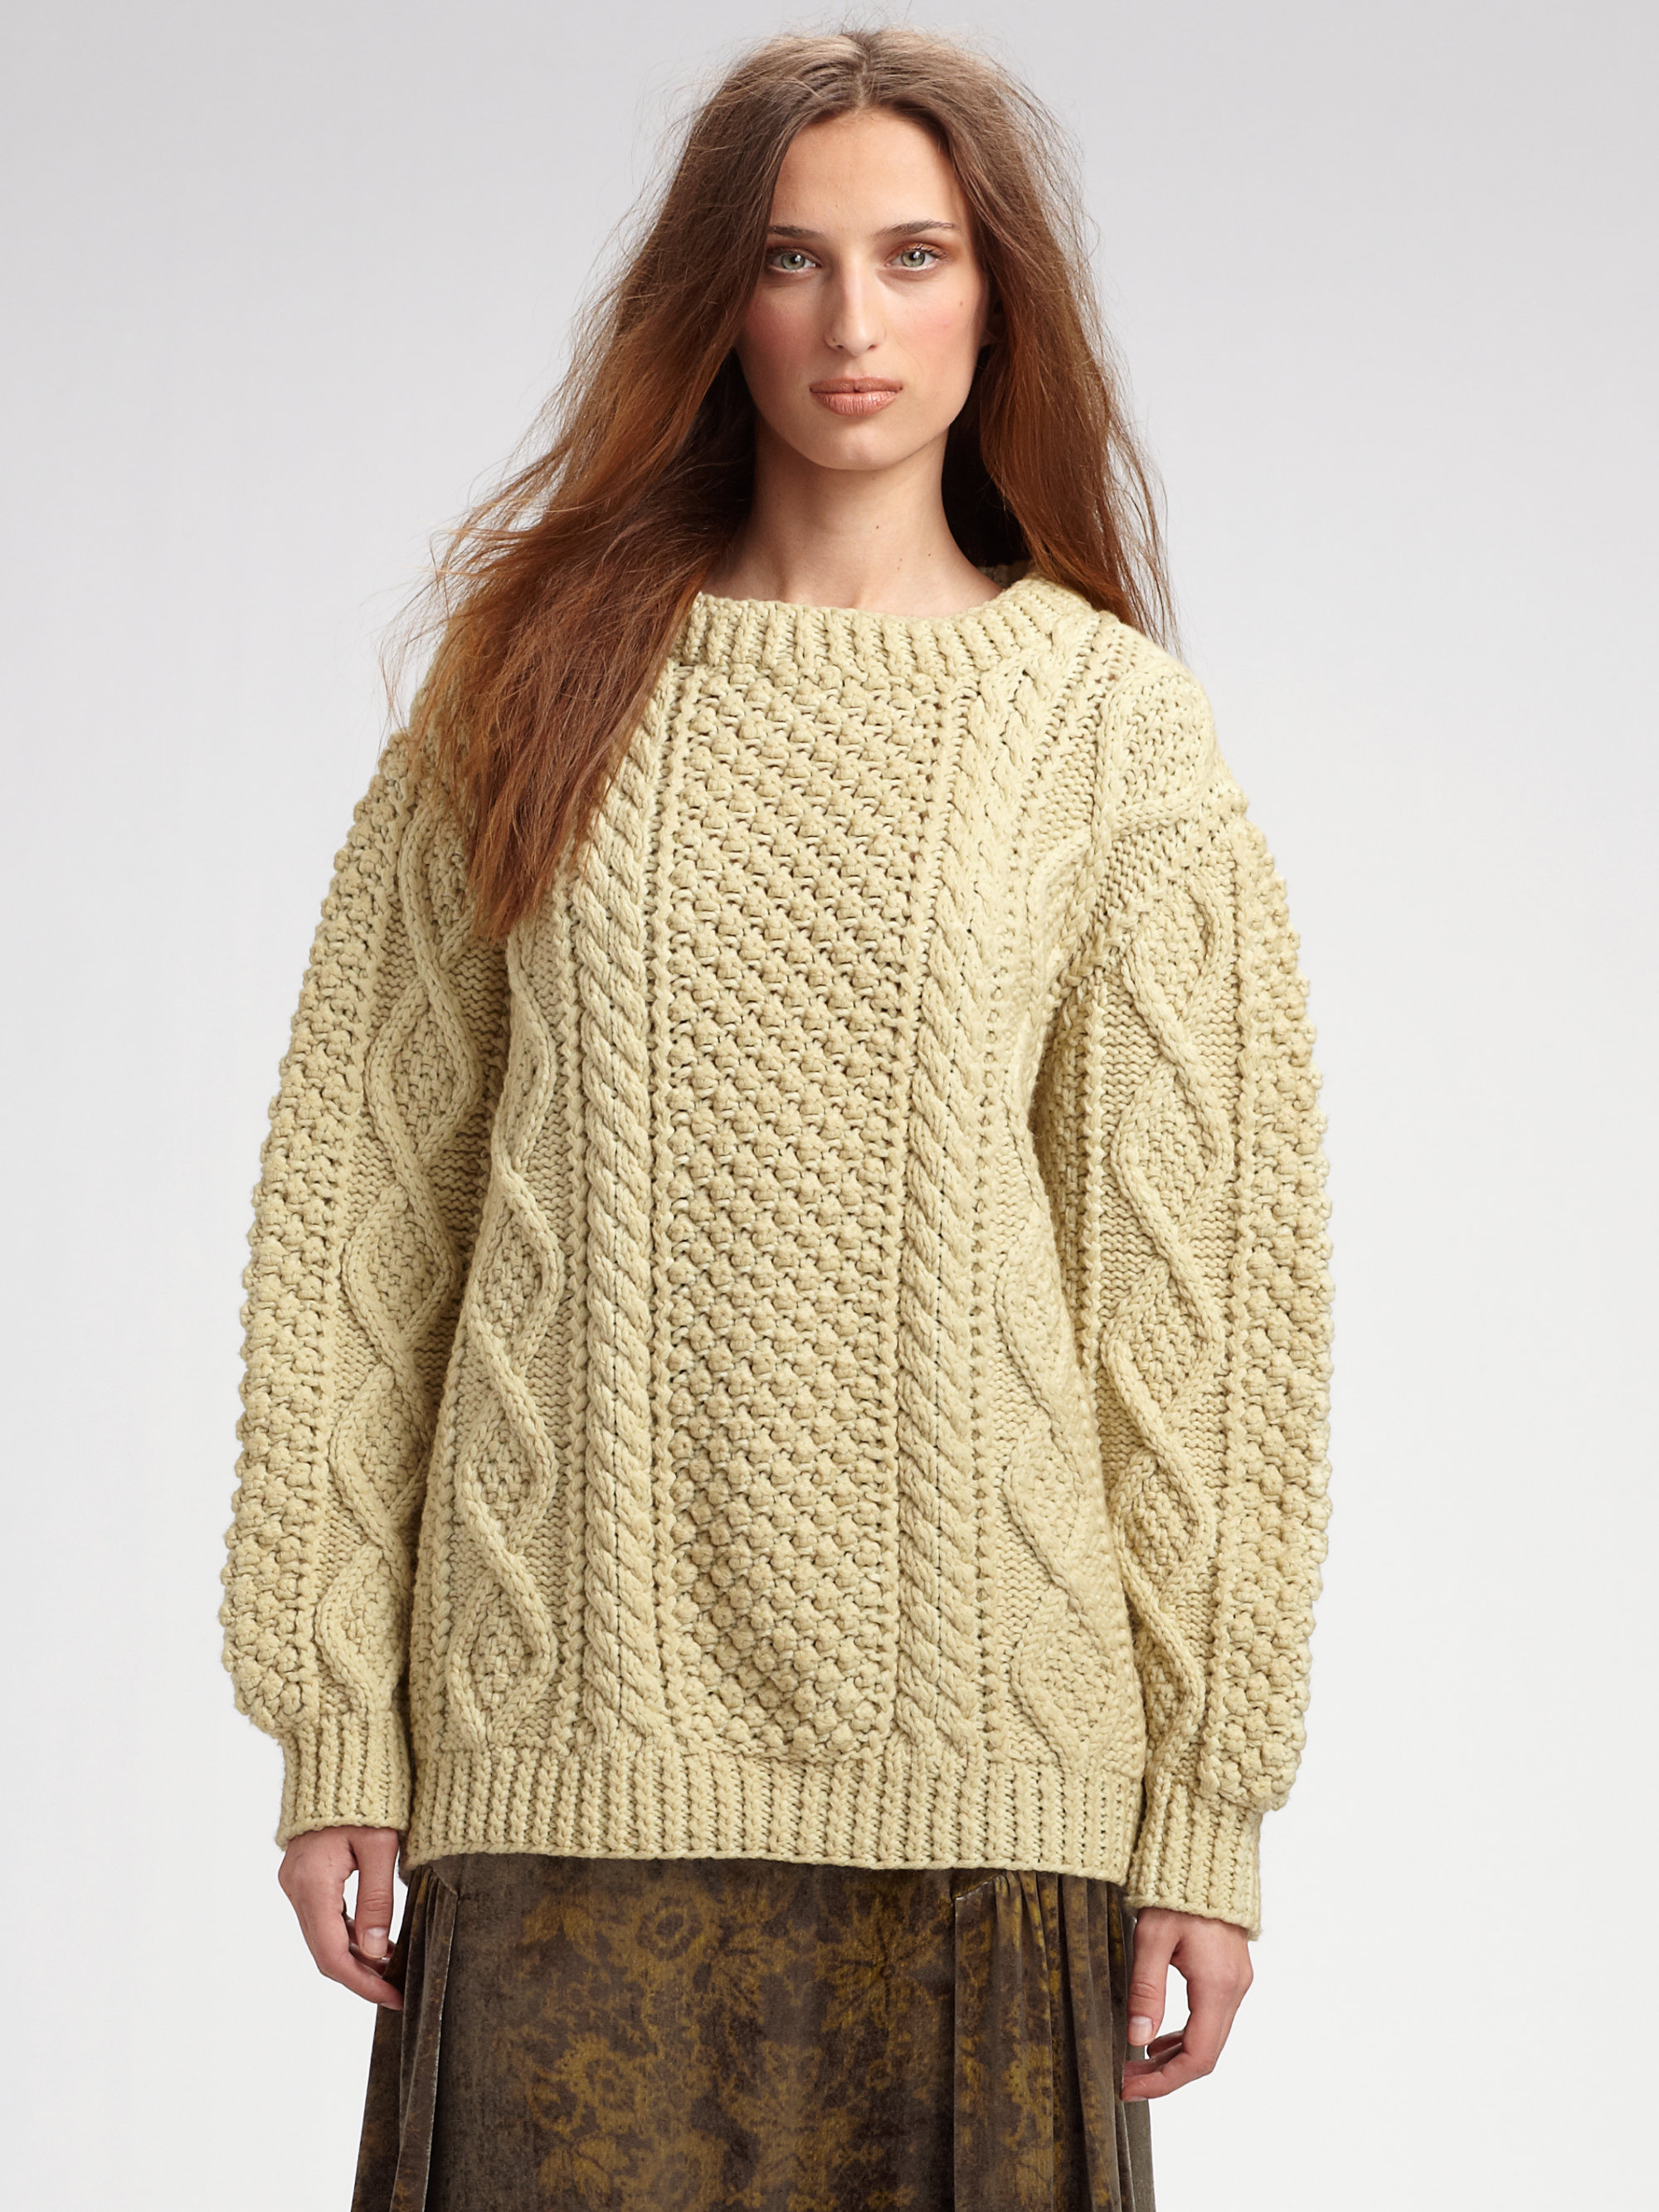 62640731e5faf Lyst - Marc Jacobs Handknit Fisherman Sweater in Natural